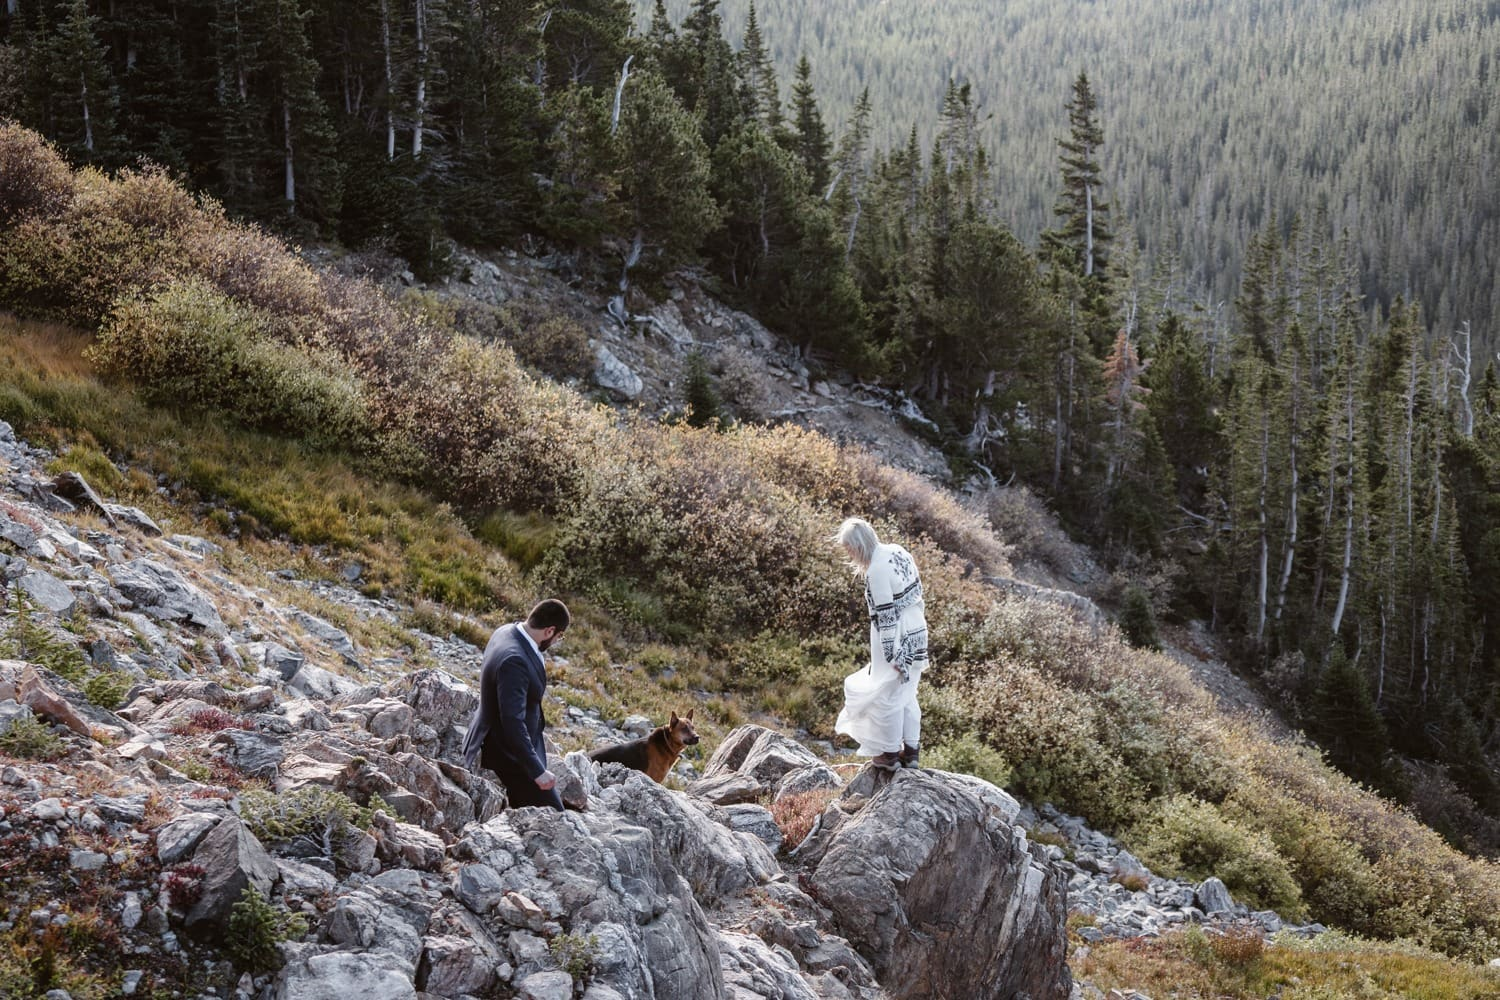 Bride and Groom Hiking Colorado Photographer Hiking Adventure Elopement